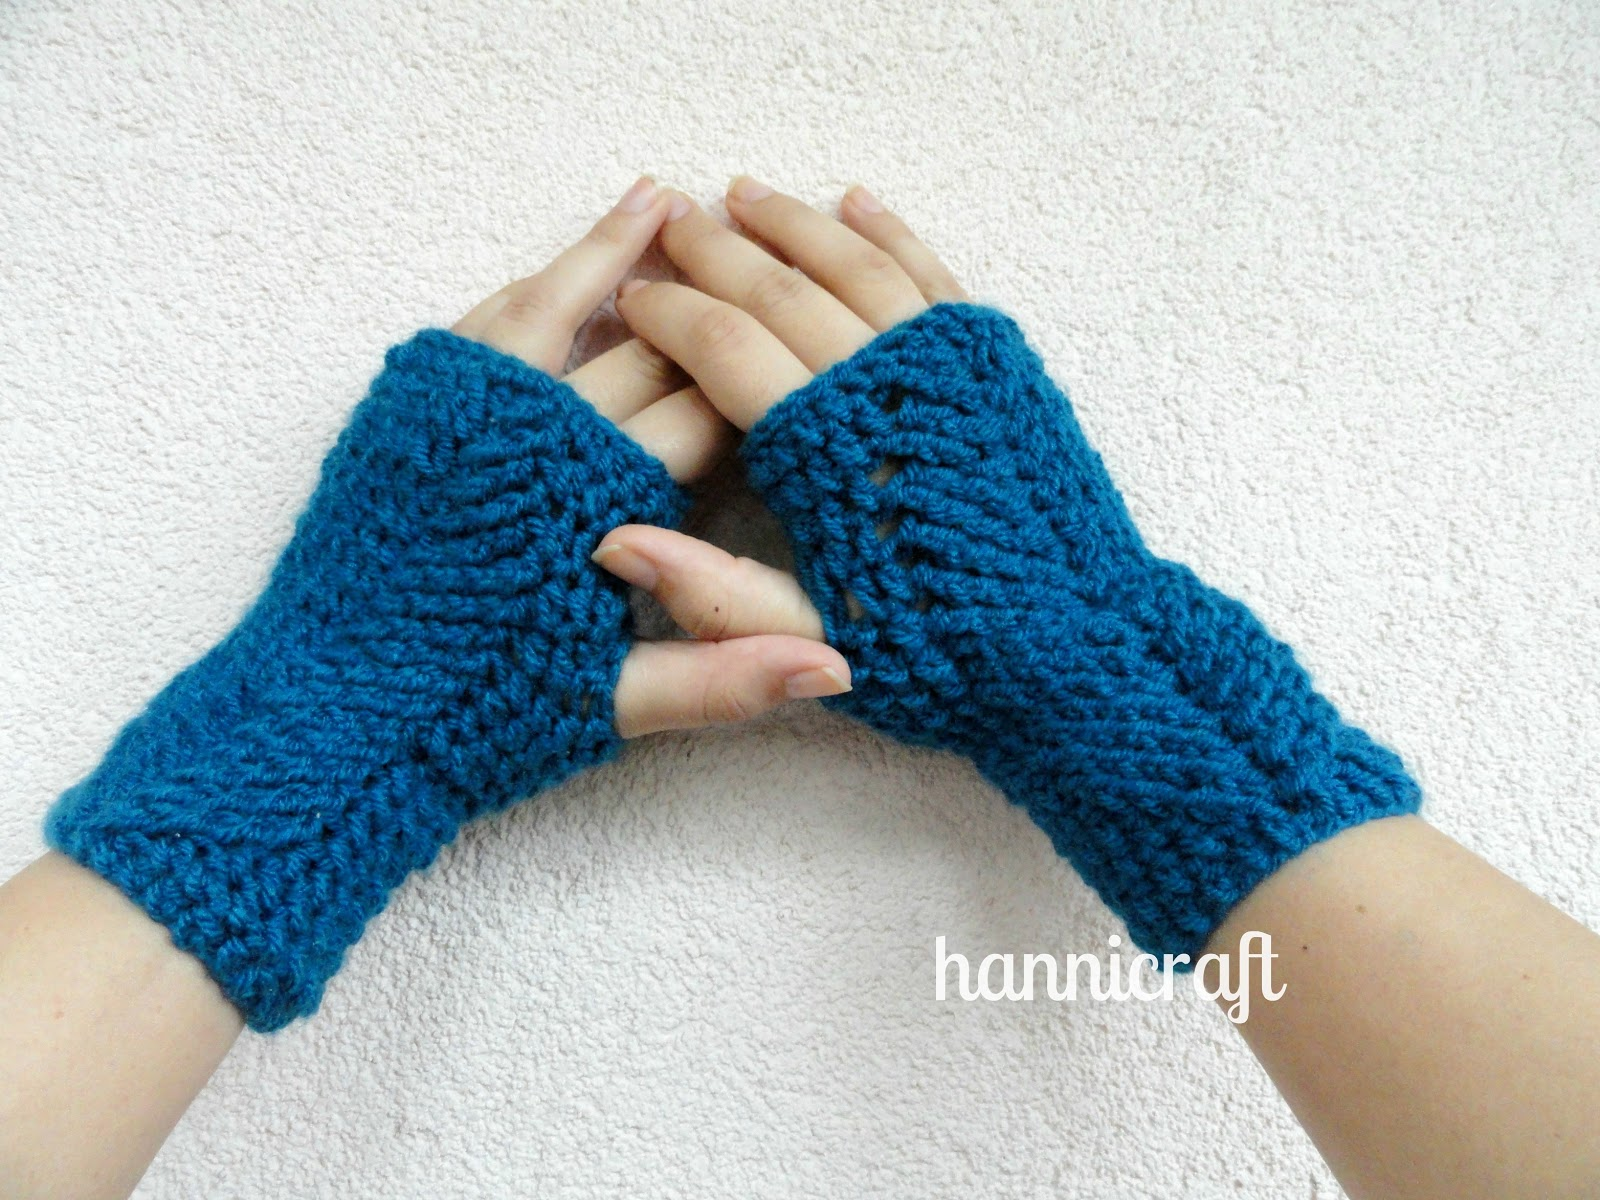 hannicraft: Braided Fingerless Mittens - free pattern